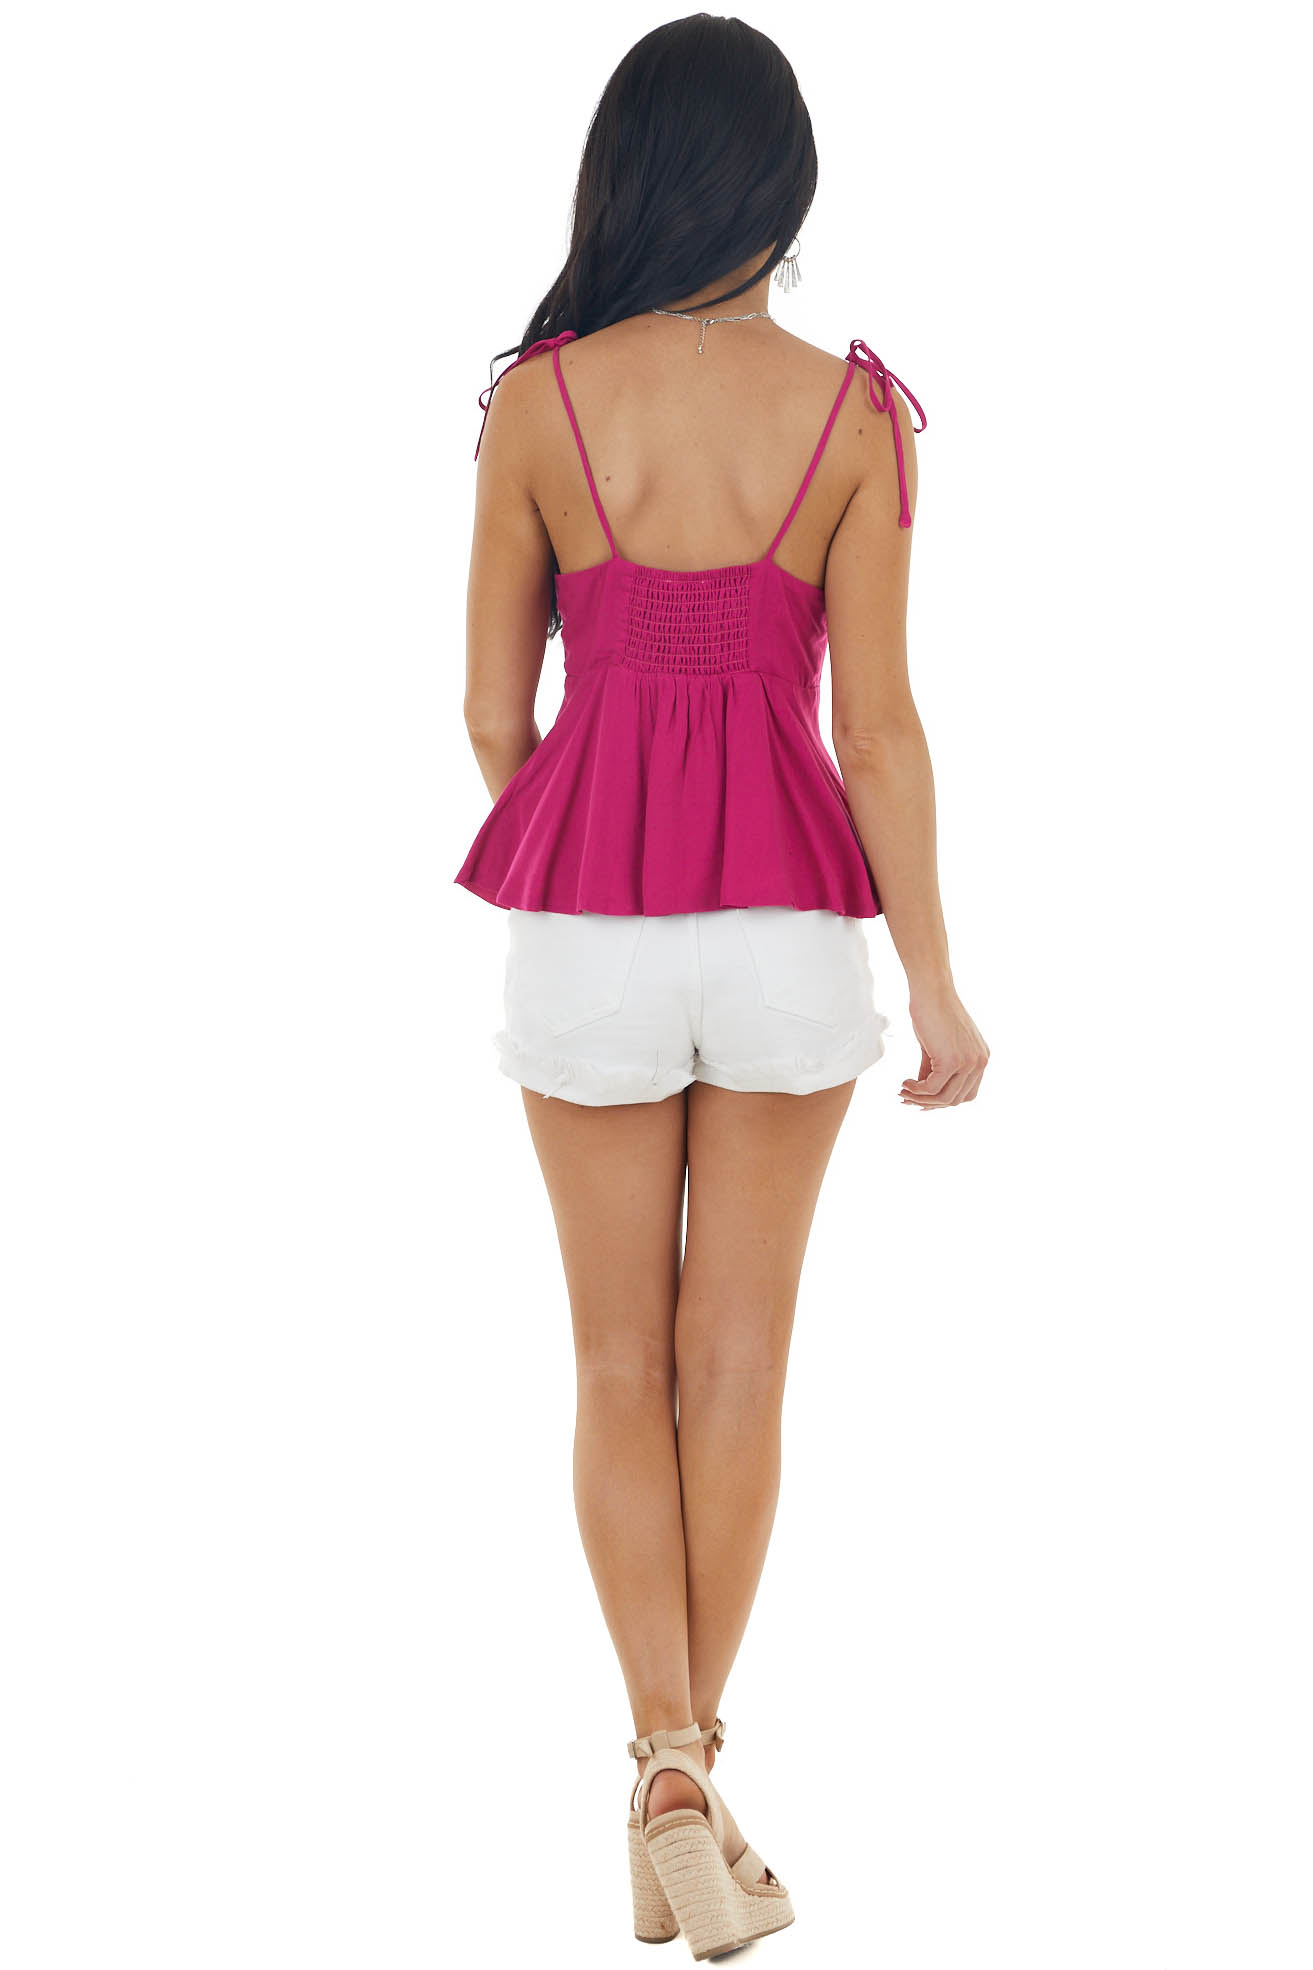 Rich Raspberry Woven Tank Top with Tie Front Closure